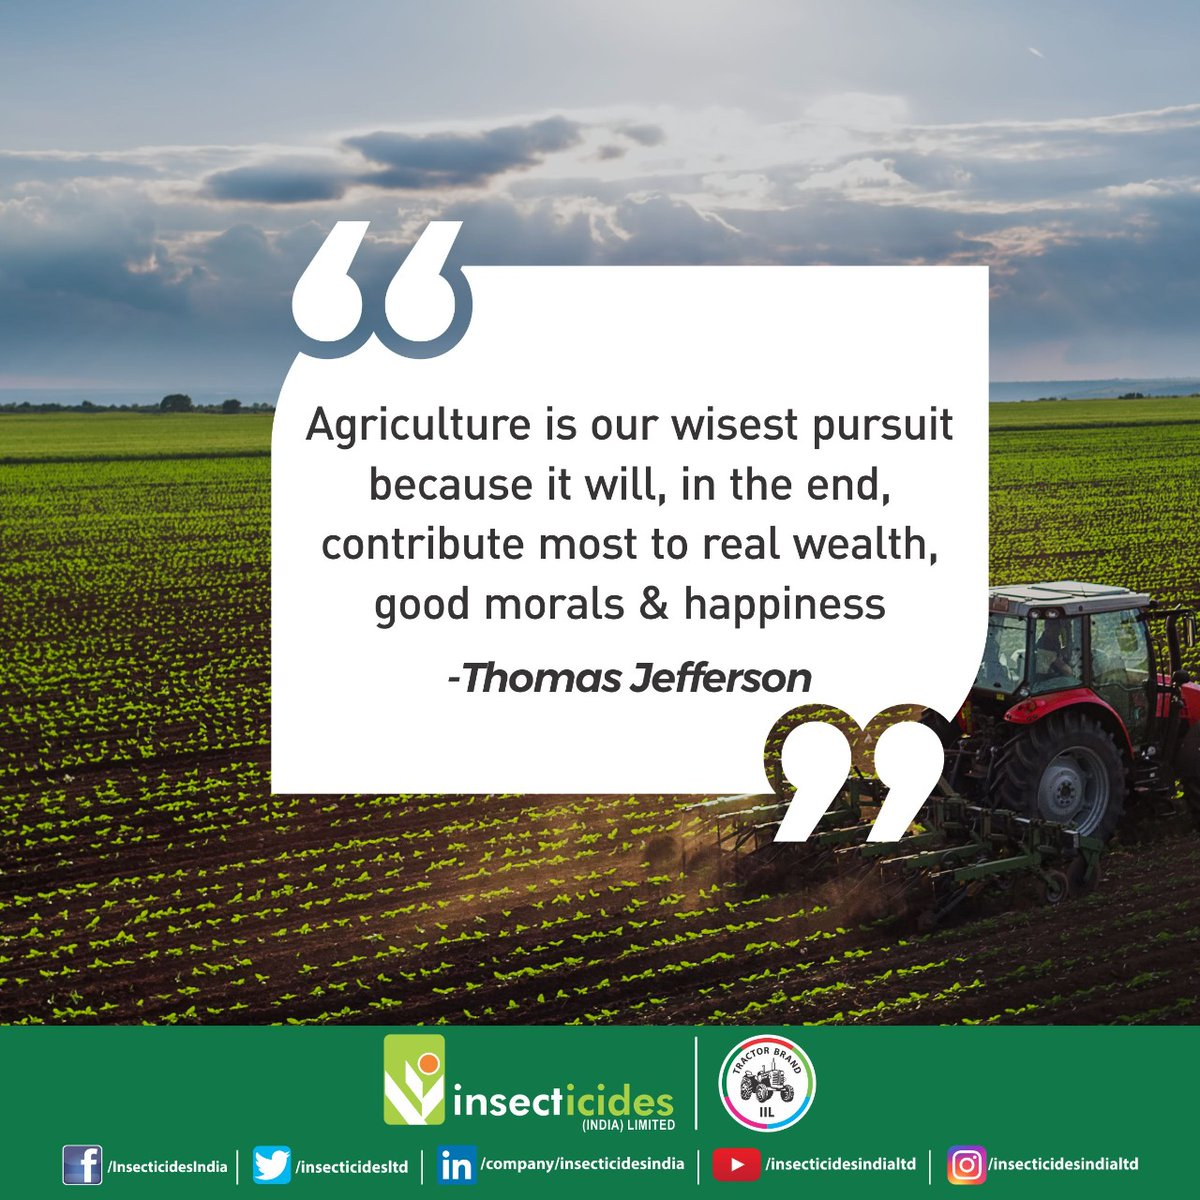 """We absolutely believe what had been said by Thomas Jefferson on """"Agriculture"""".   #IIL #Agriculture #Farmers #India #TractorBrand https://t.co/QlYdj9dRkf"""